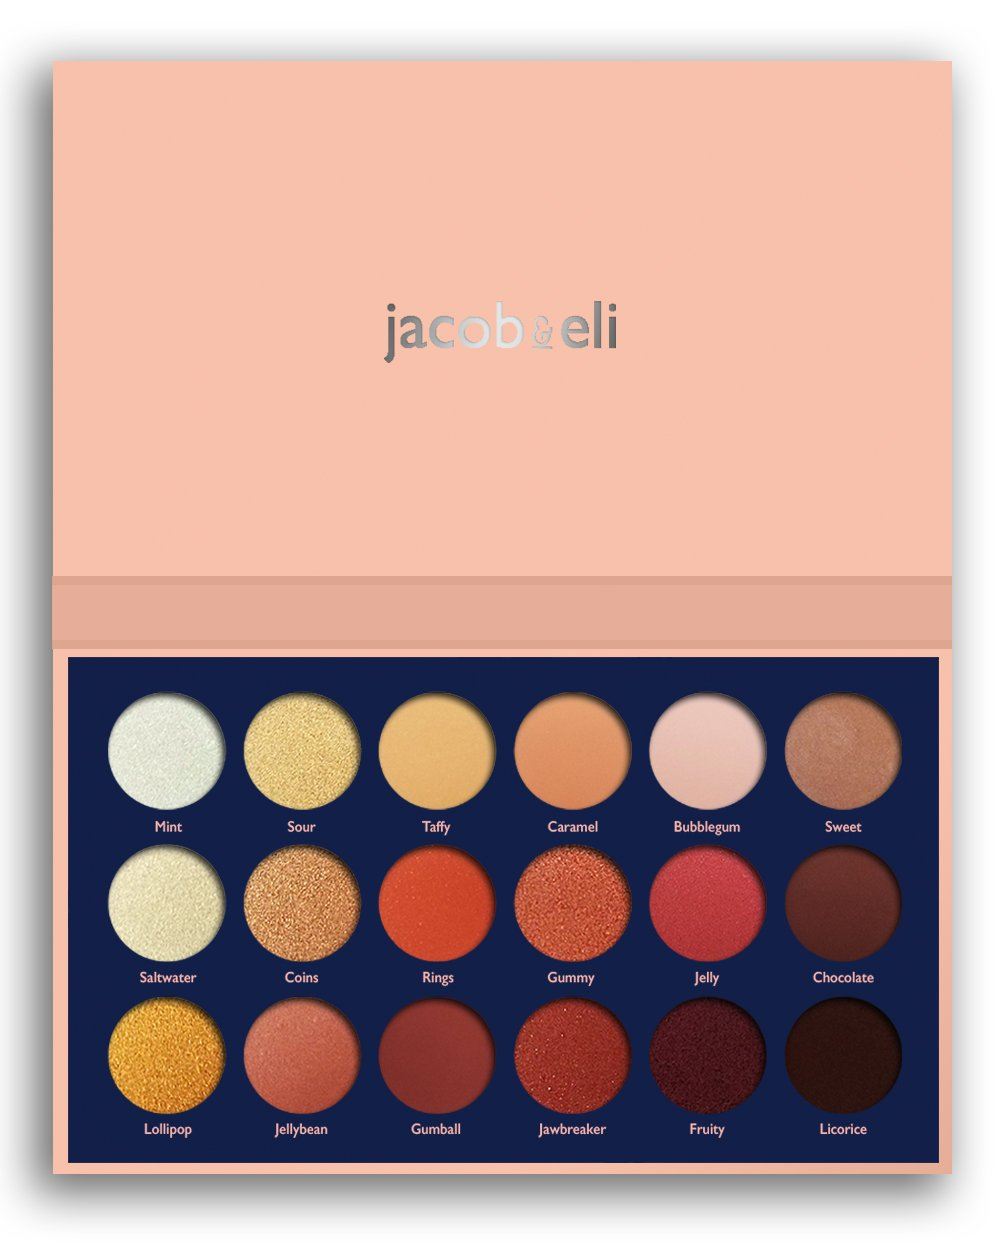 18 Super Pigmented - Top Influencer Professional Eyeshadow Palette all finishes, 5 Matte + 9 Shimmer + 4 Duochrome - Buttery Soft, Creamy Texture, Blendable, (Candy Peaches) Jacob and Eli